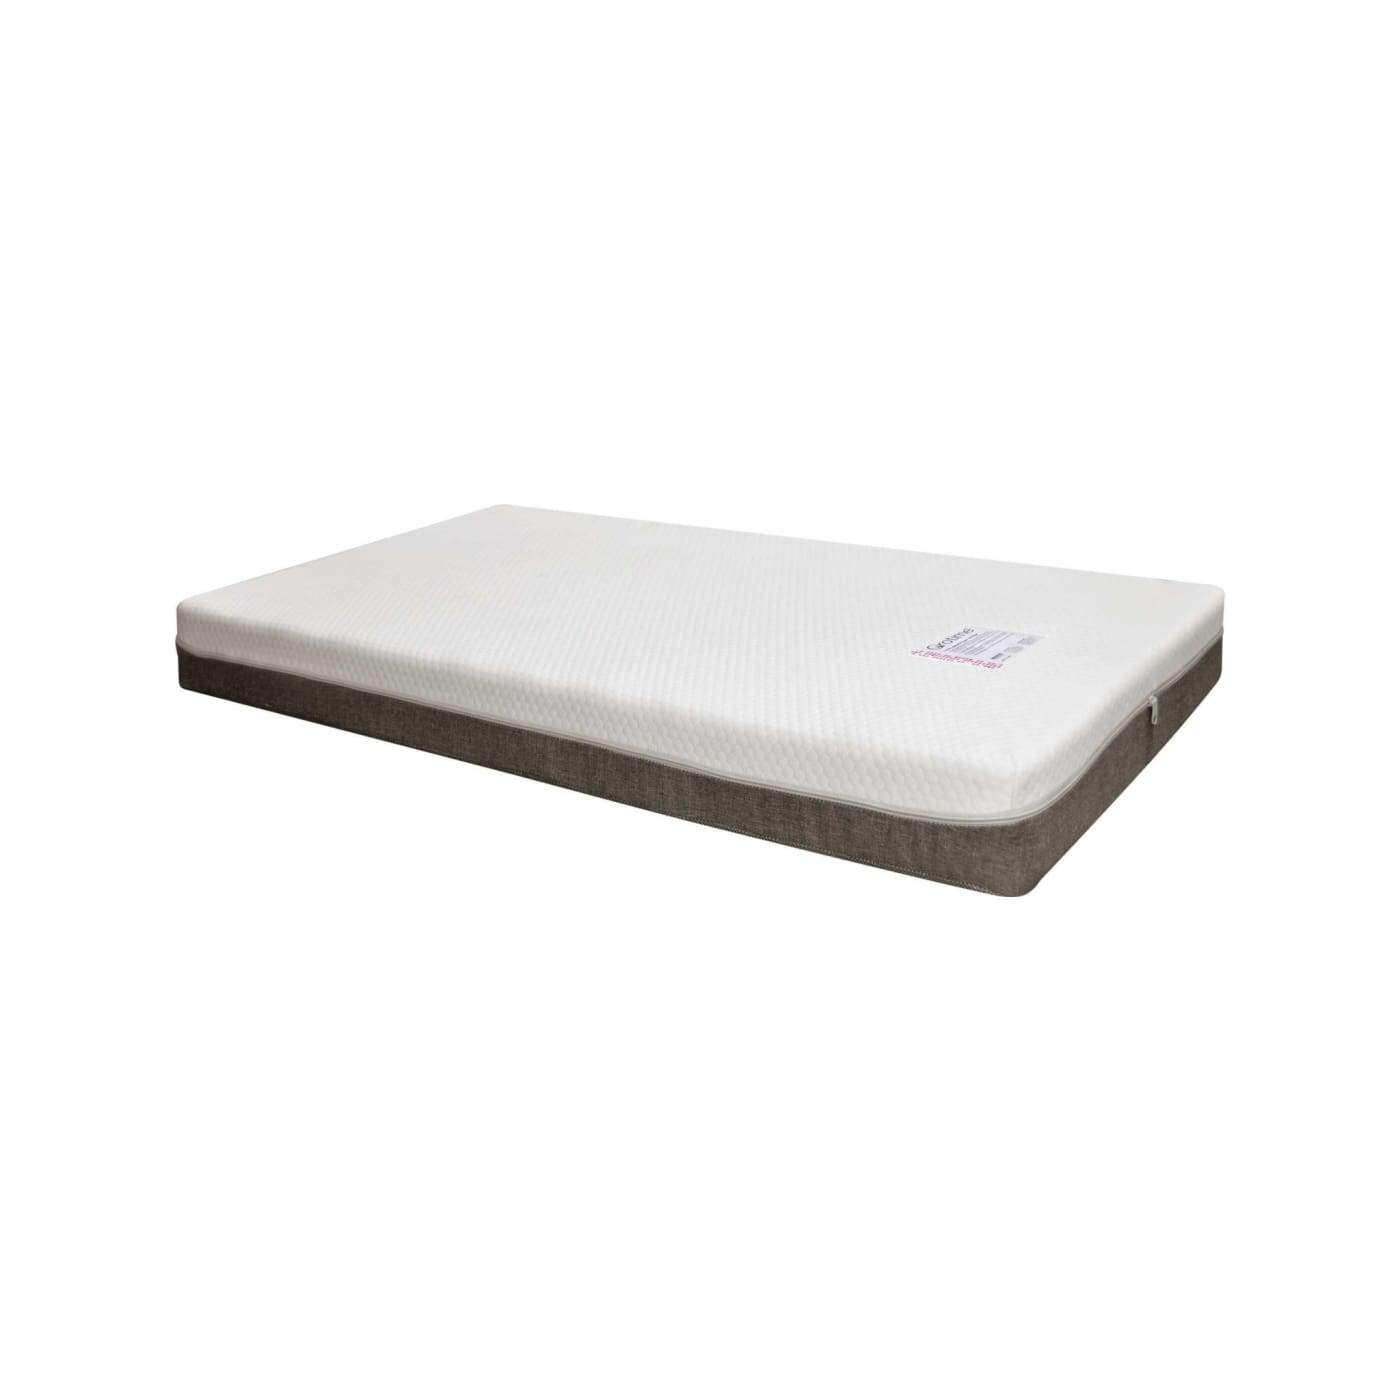 Grotime Breathe Easy Mattress for Overture Cot 108x66cm - NURSERY & BEDTIME - COT MATTRESSES